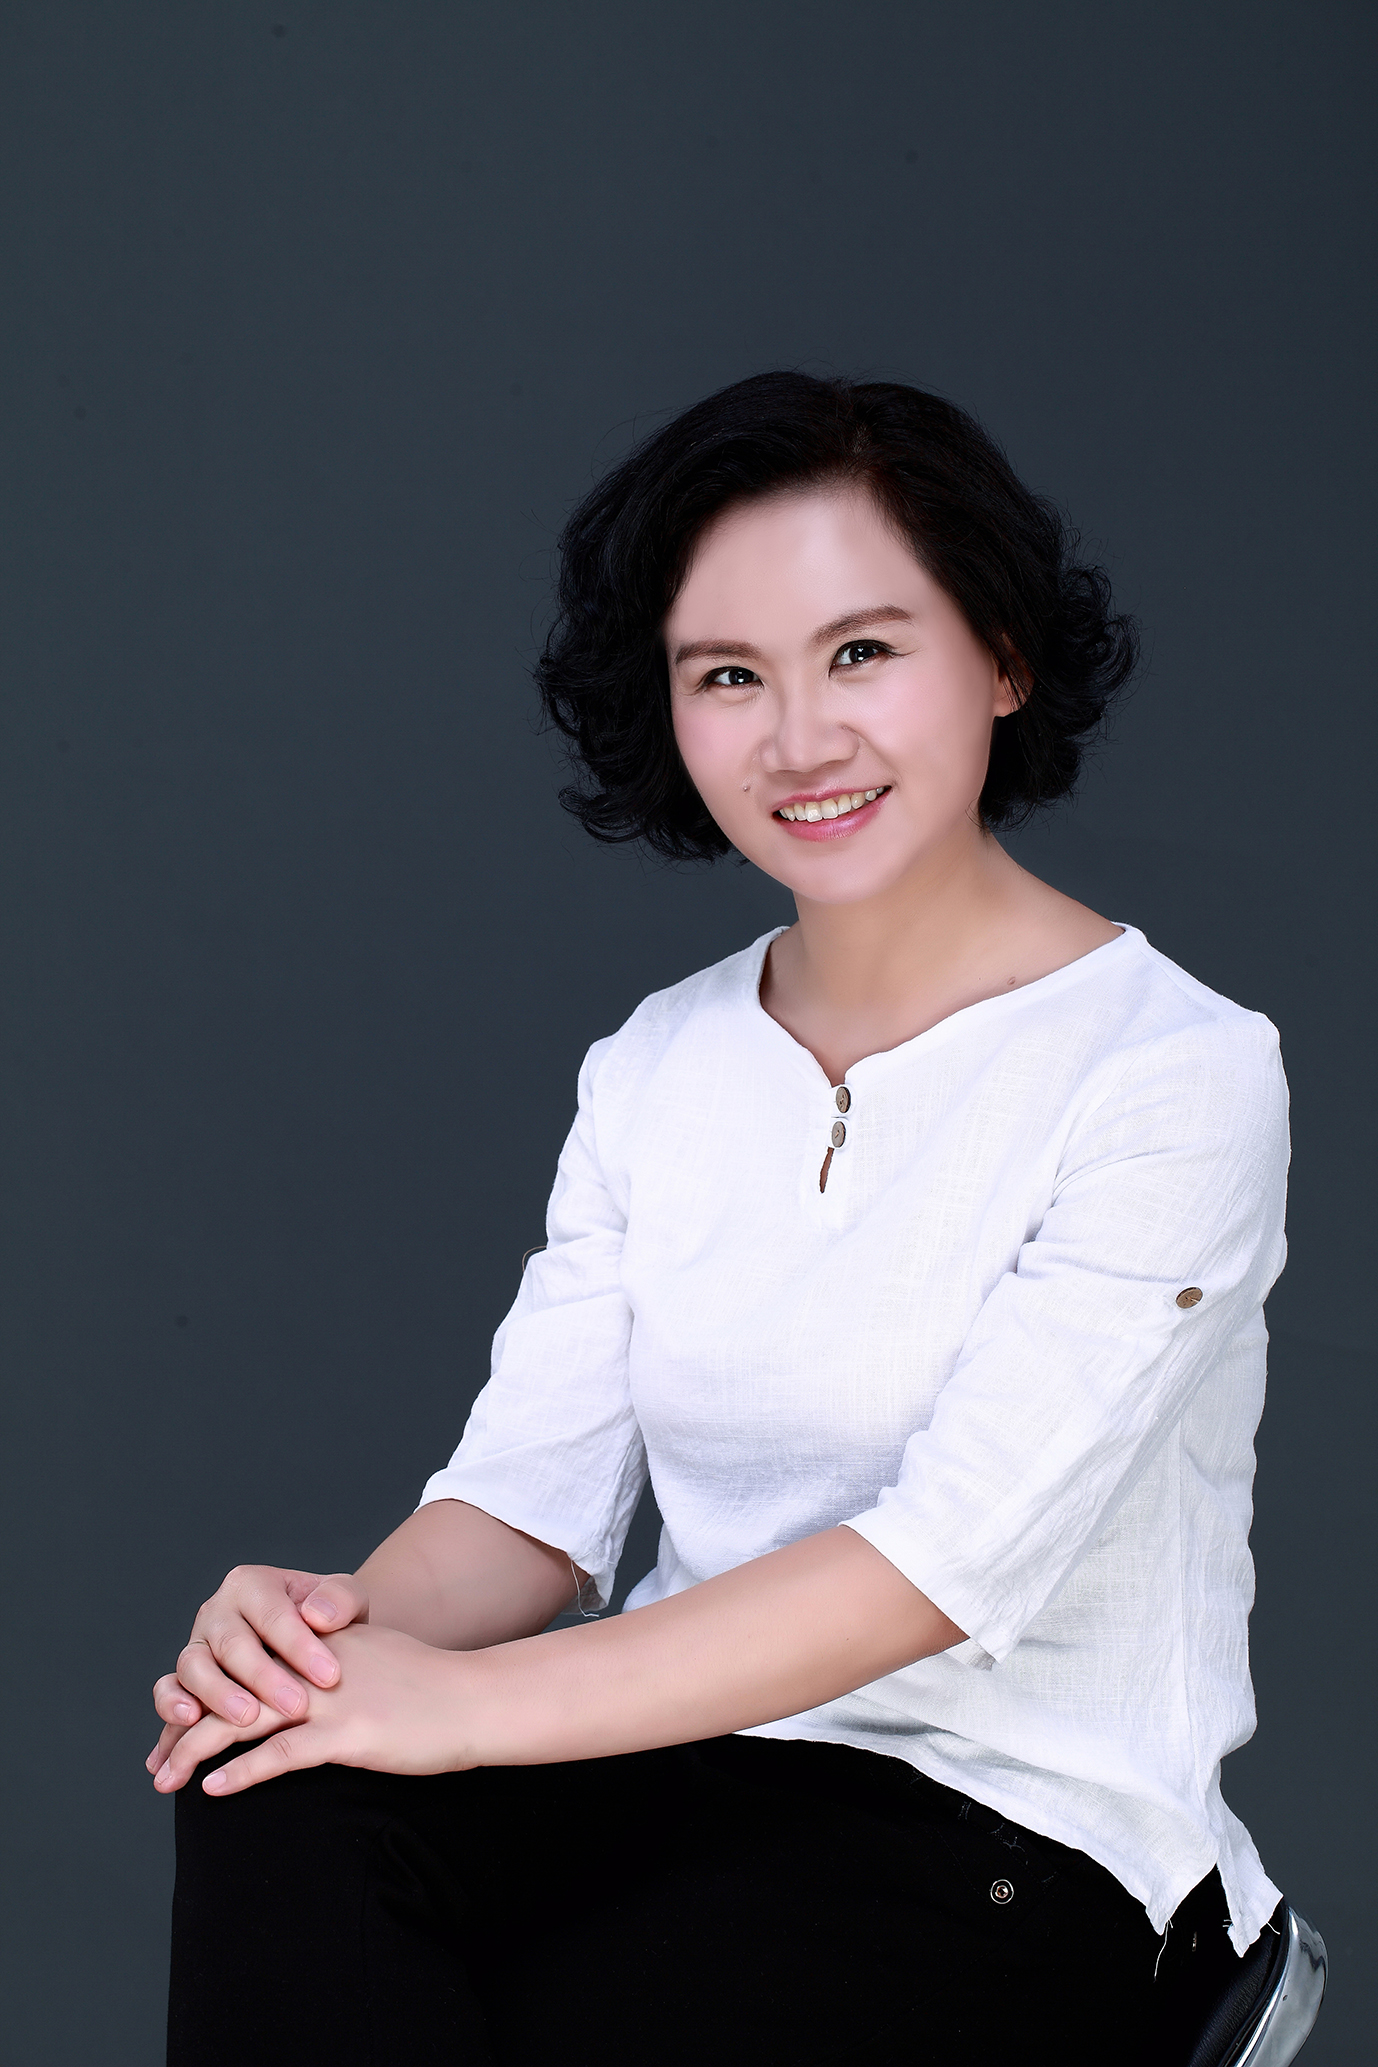 Vivian Du - Chinese Medical Translator